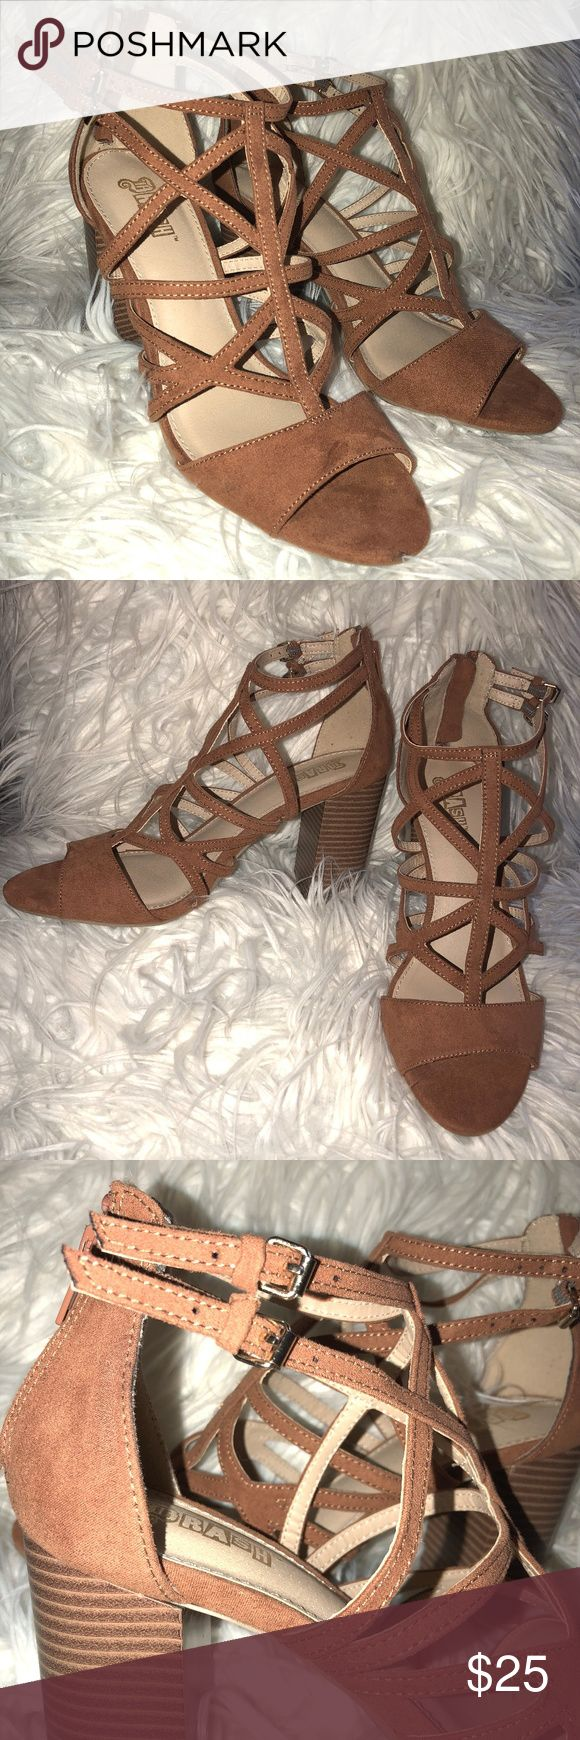 Camel Strappy Block Heels • 9 • Brash • NWOT Brand: Brash by Payless Color: Camel Material: Suede-like Size: 9 Heel height: Approx 3.75 inches  NWOT. Never worn. Perfect for the spring and summer. Features zipper on the back as well as 2 cute tiny buckles on the side. They do not come with the original box. Additional photos available upon request. Brash Shoes Heels